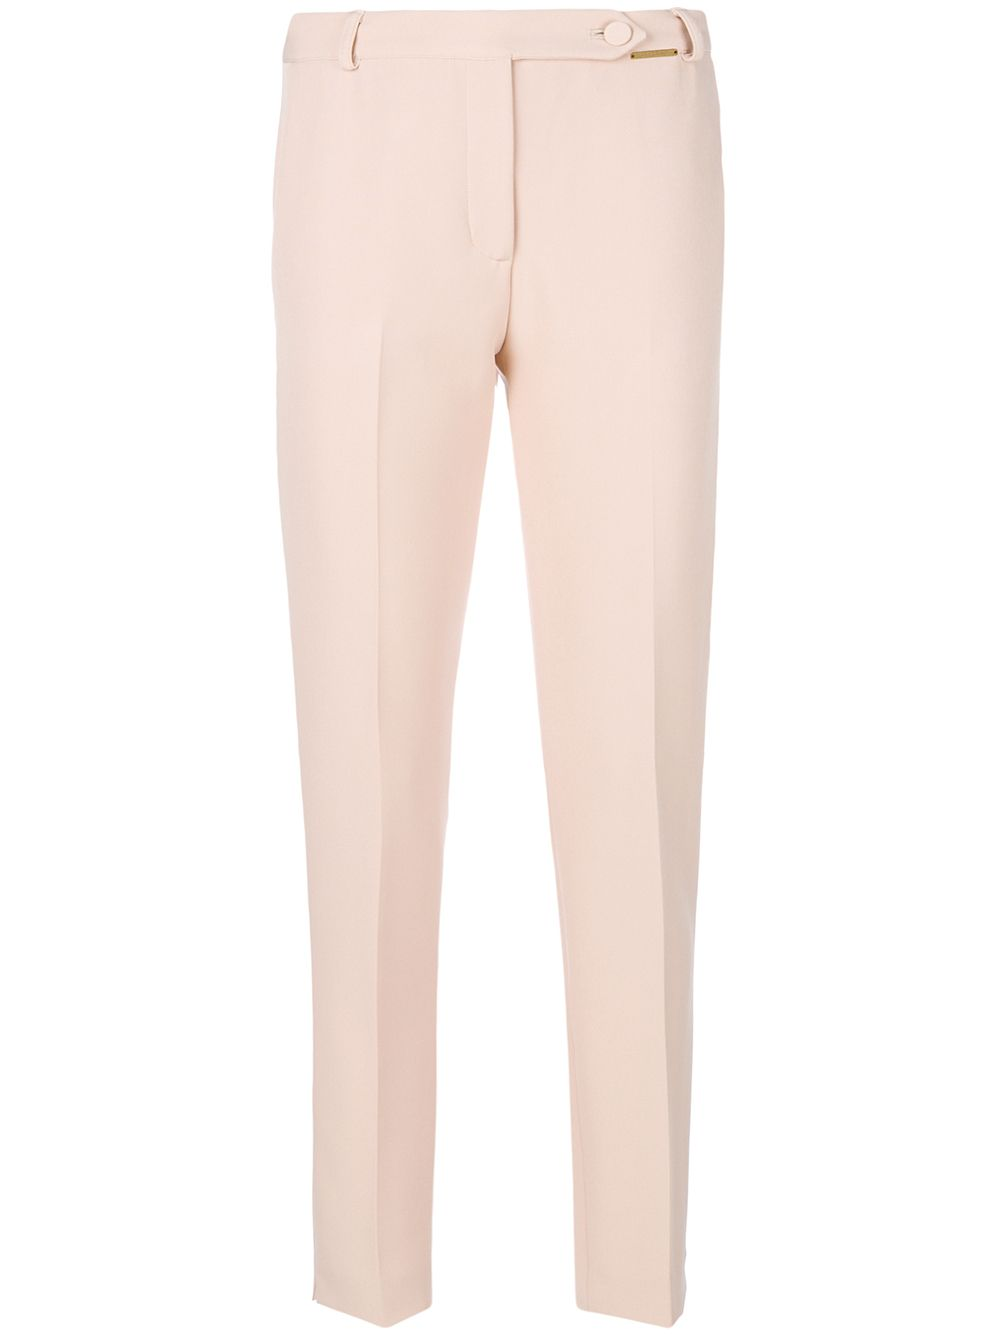 a3a35ad2d2ab4b styland-cropped-trousers-pink-purple-farfetch-com-photo.jpg 1531996987